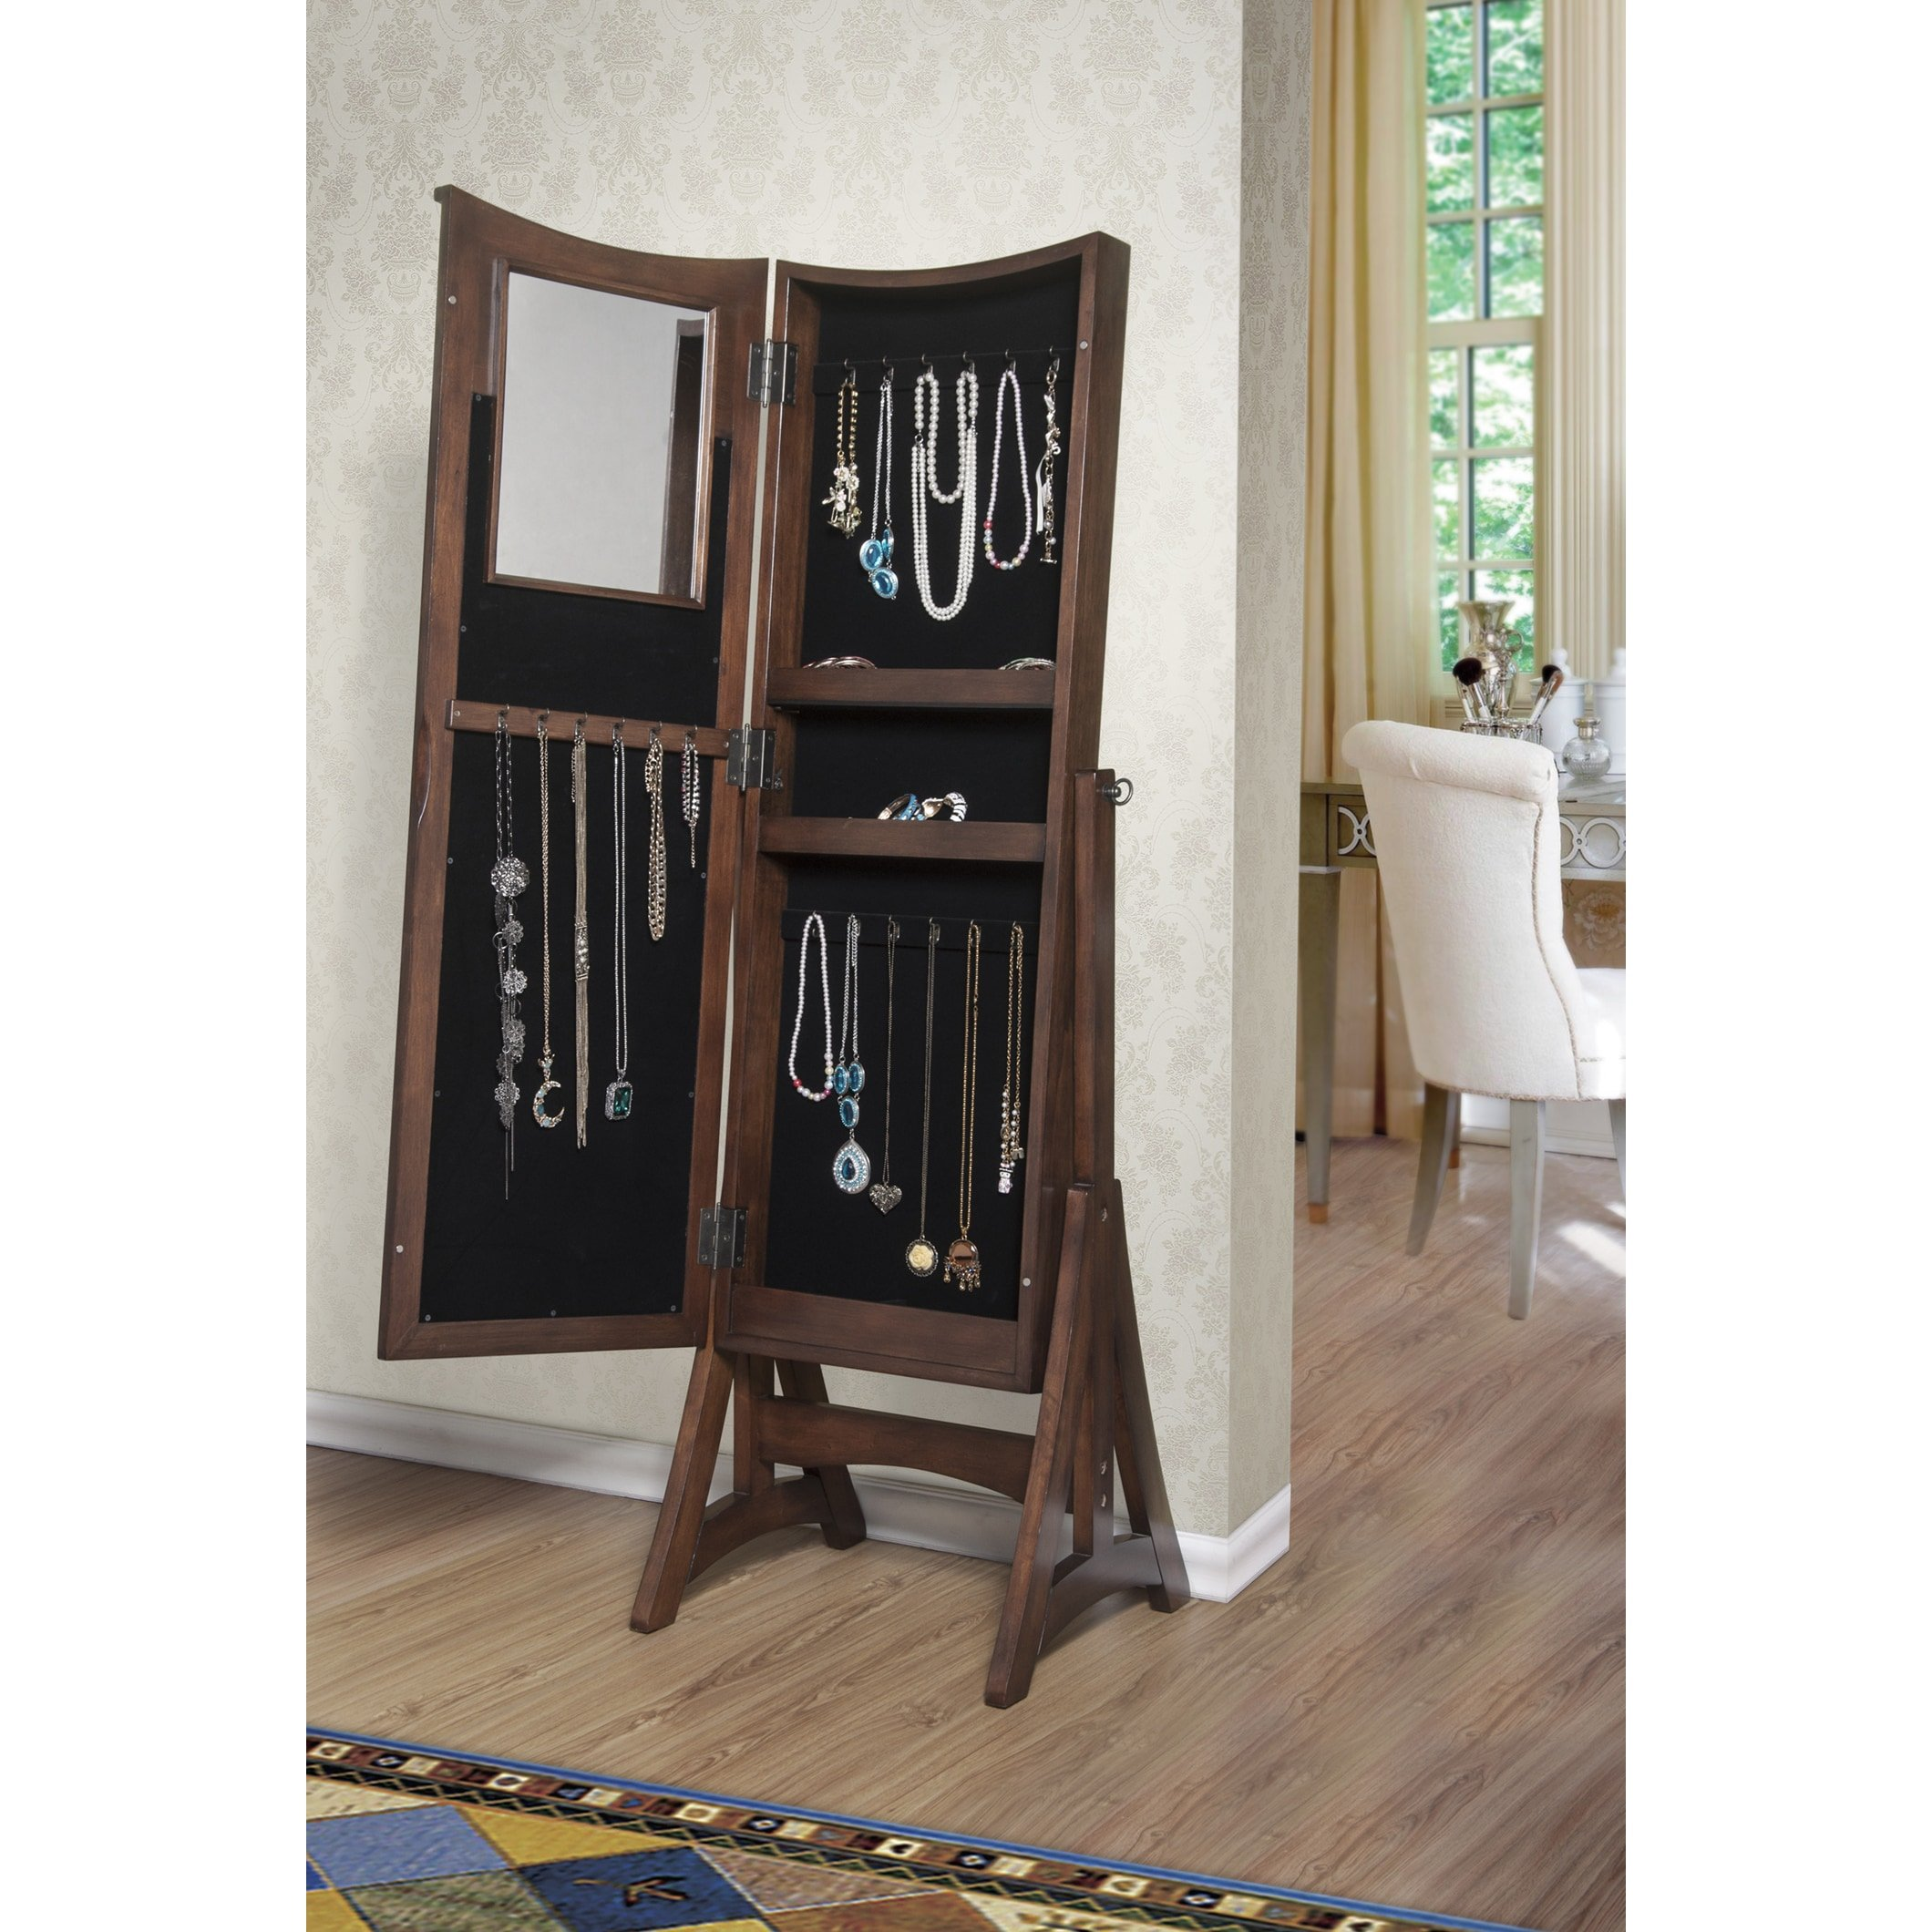 W Unlimited Bedford Classic Long Cheval Mirror Jewelry Cabinet Armoire for Necklaces, Rings, Earrings, Bracelets Storage Organizer Stand, Brown by WUnlimited (Image #2)